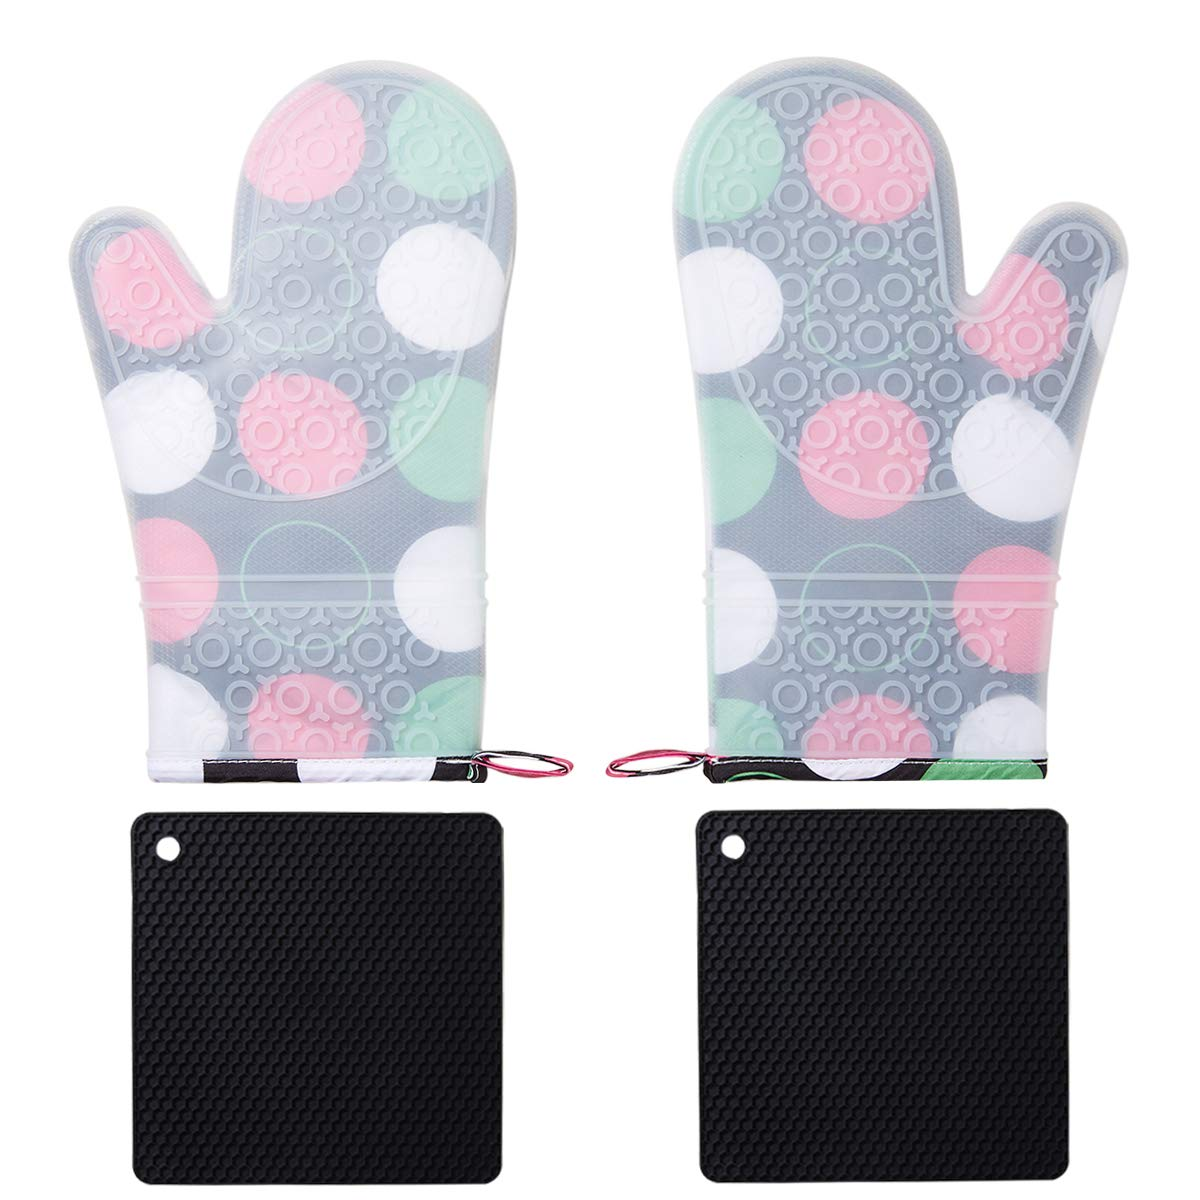 BALOPIVE Silicone Heat Resistant Oven Mitts,with Quilted Cotton Lining and Non-Slip Pot Holders for BBQ Cooking Baking Grilling,4-Piece Sets (Colored Spots)